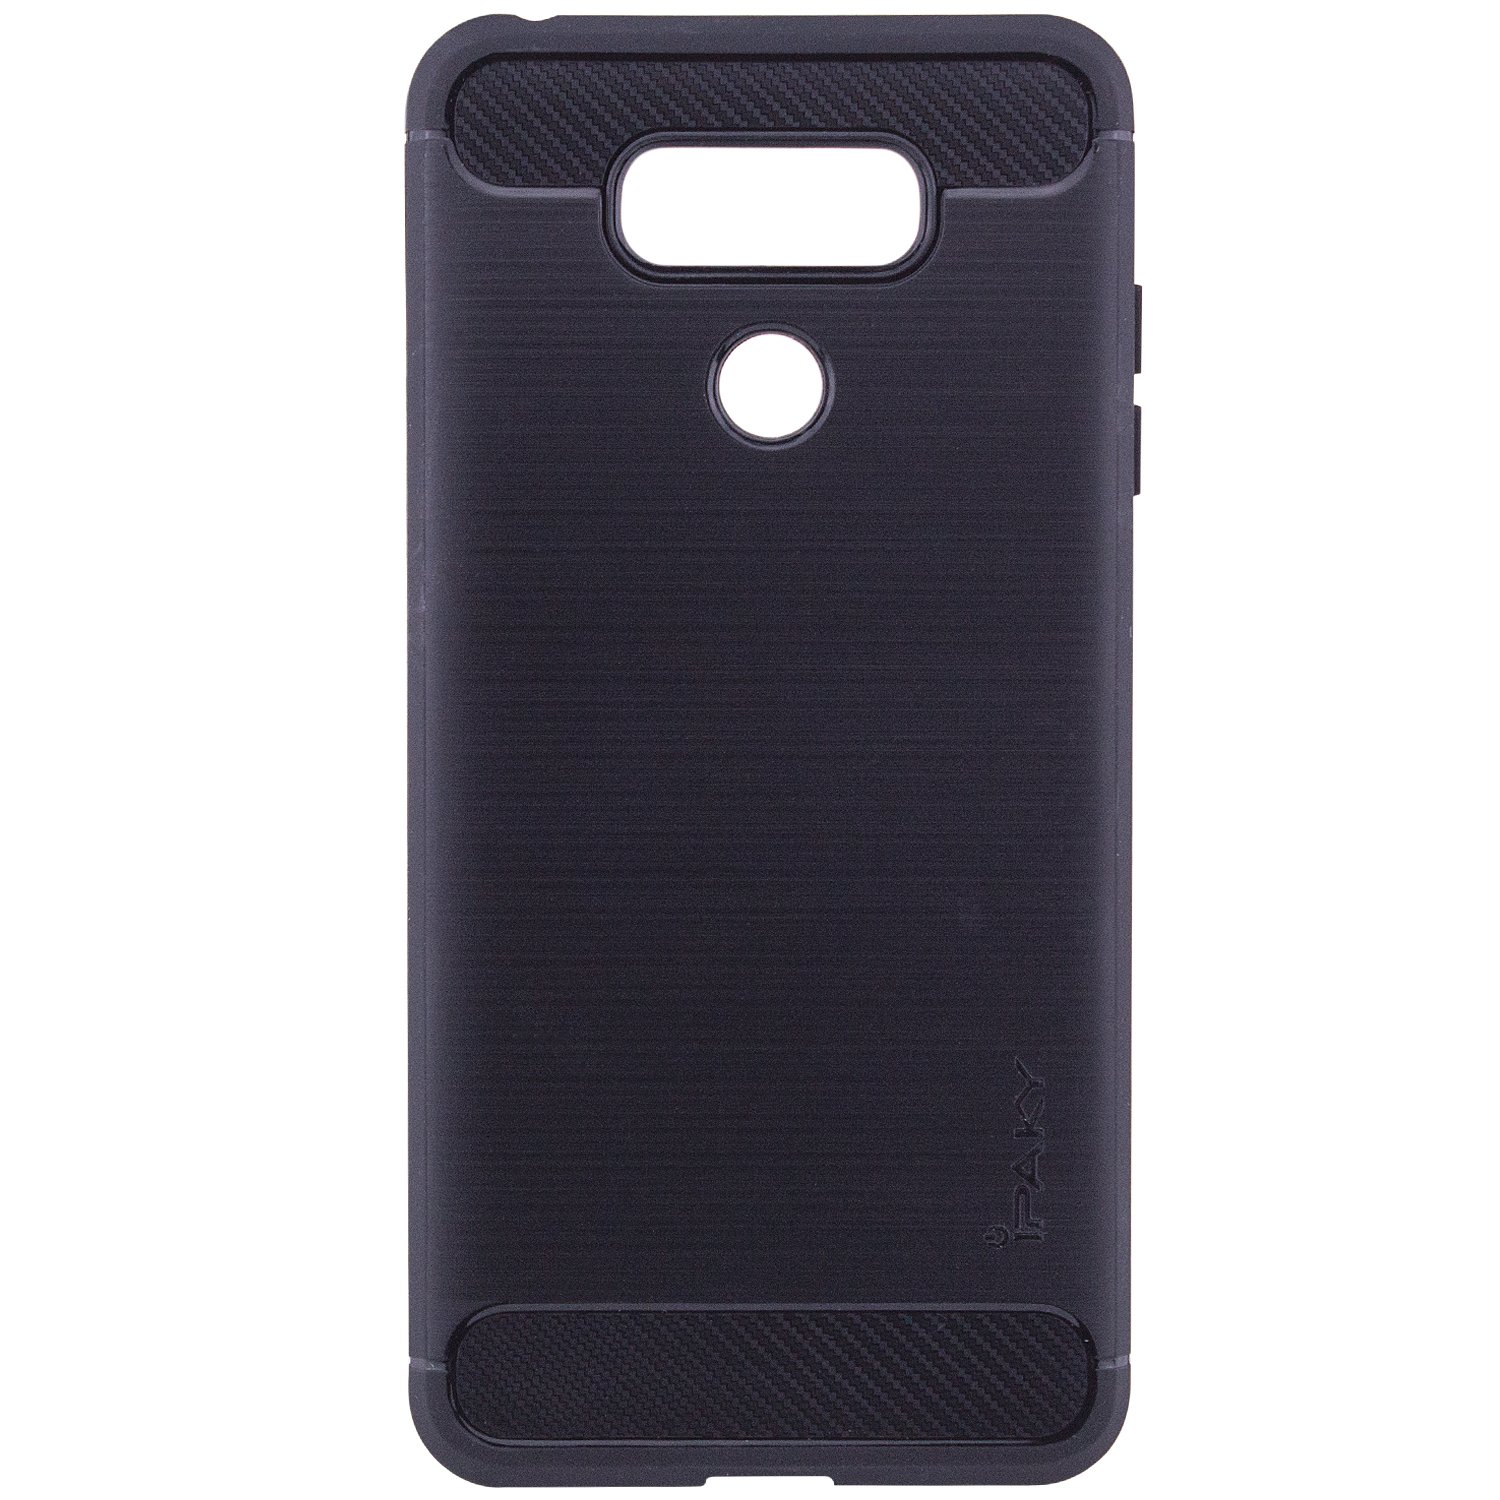 TPU чехол iPaky Slim Series для LG G6 / G6 Plus H870 / H870DS (Черный)